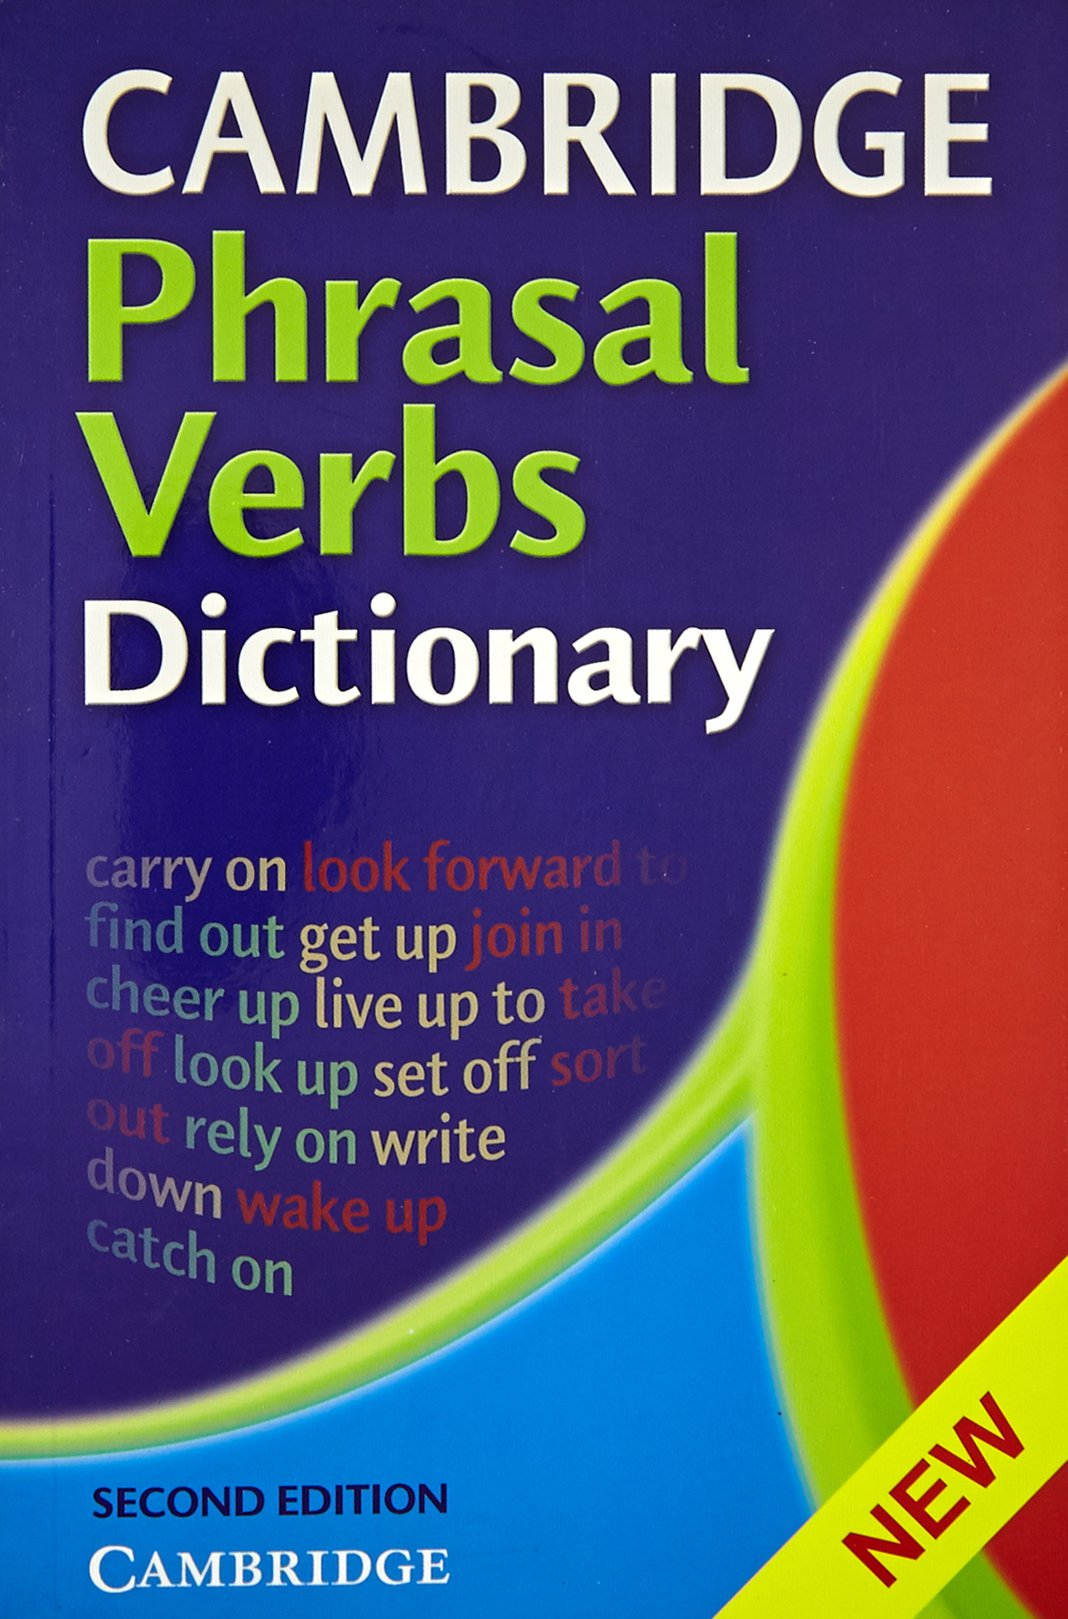 Cambridge Phrasal Verbs Dictionary Amazon In Cup Books